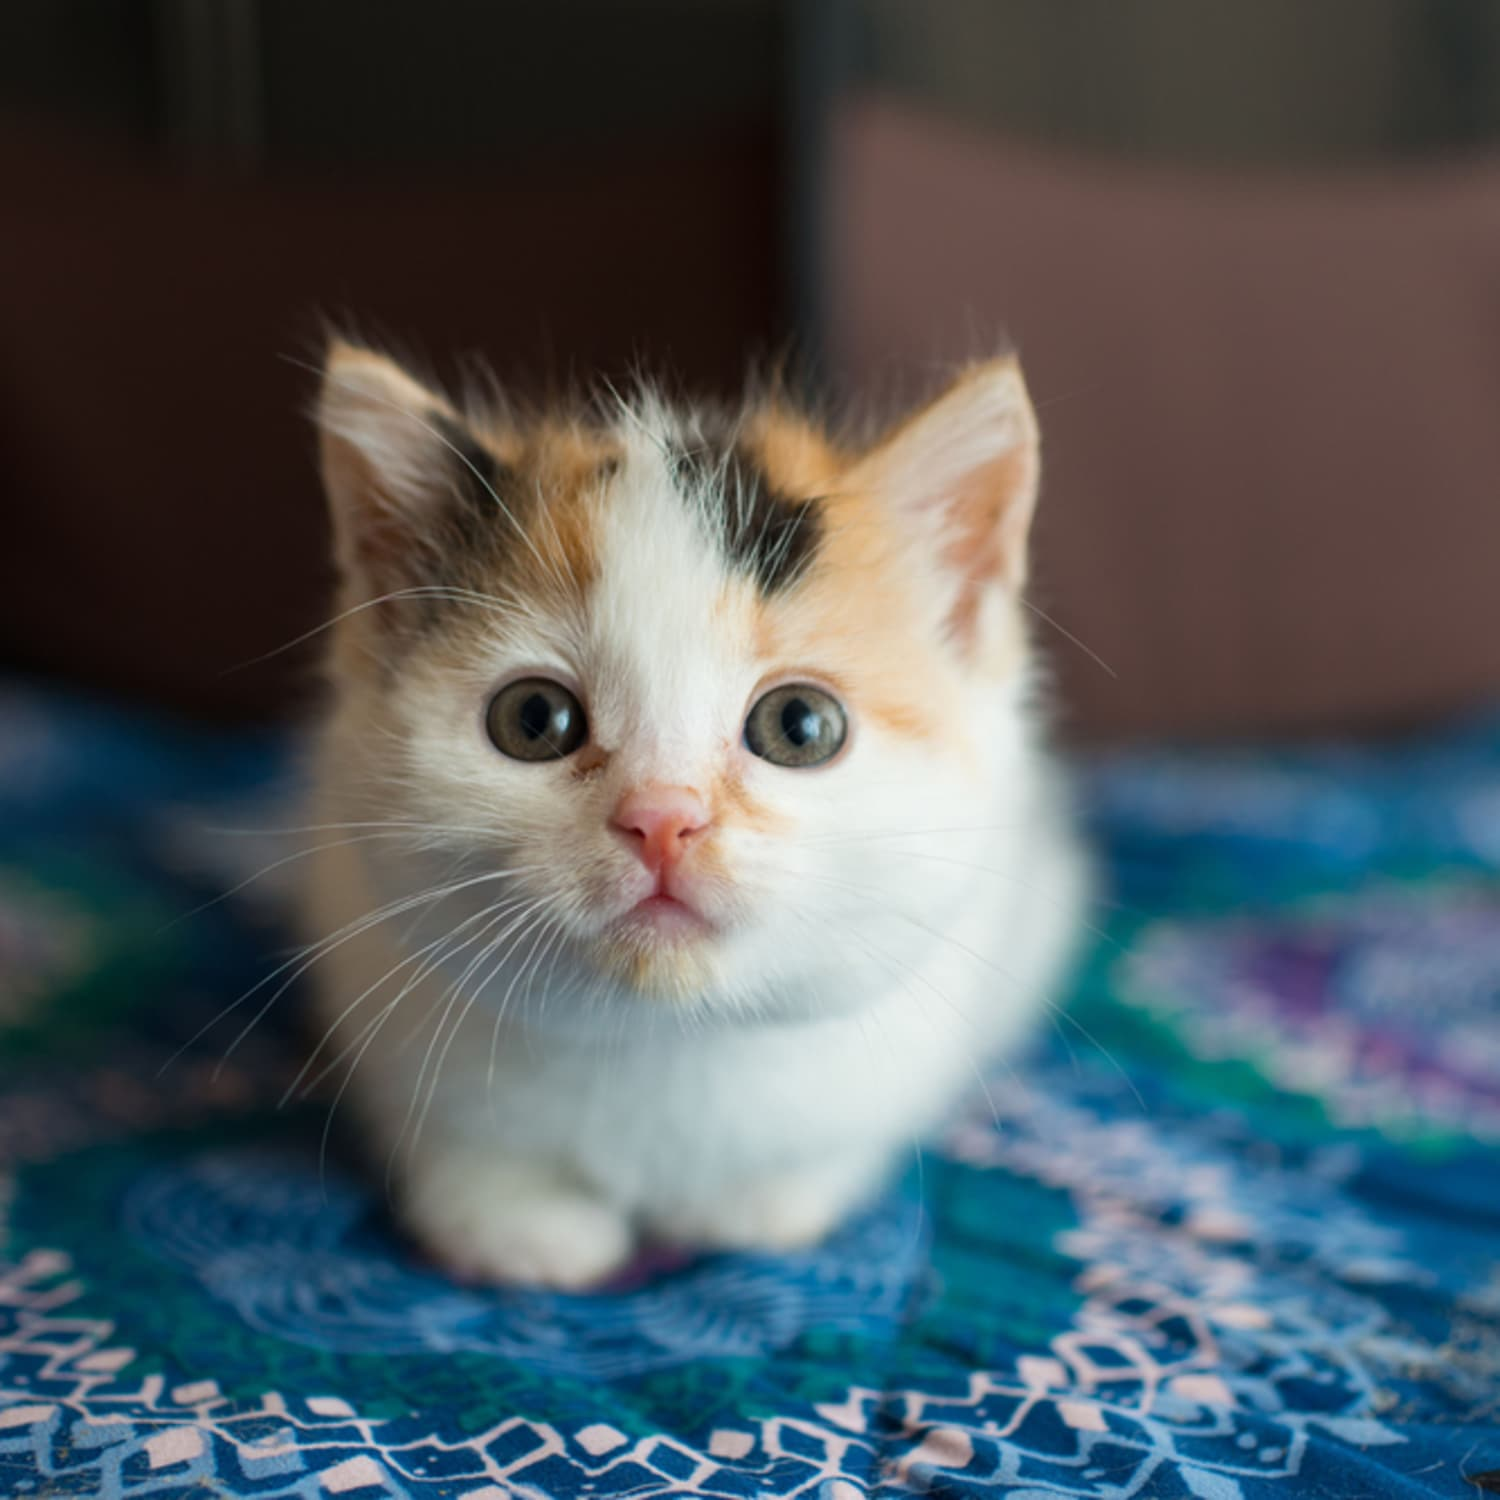 This Kitten Airbnb Is a Cat Lover's Dream Come True